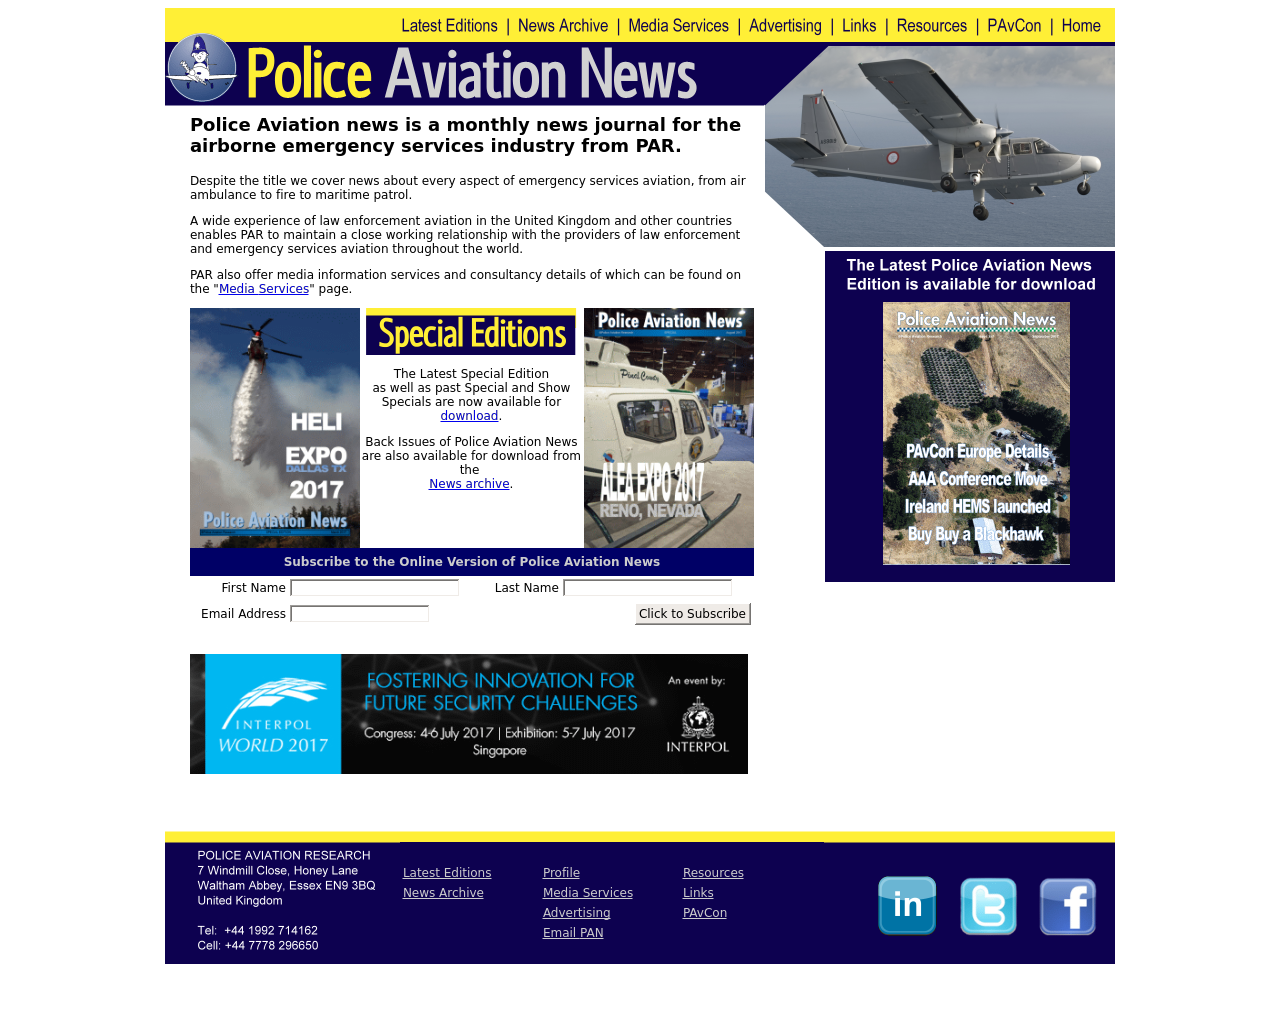 Police-Aviation-News-Advertising-Reviews-Pricing